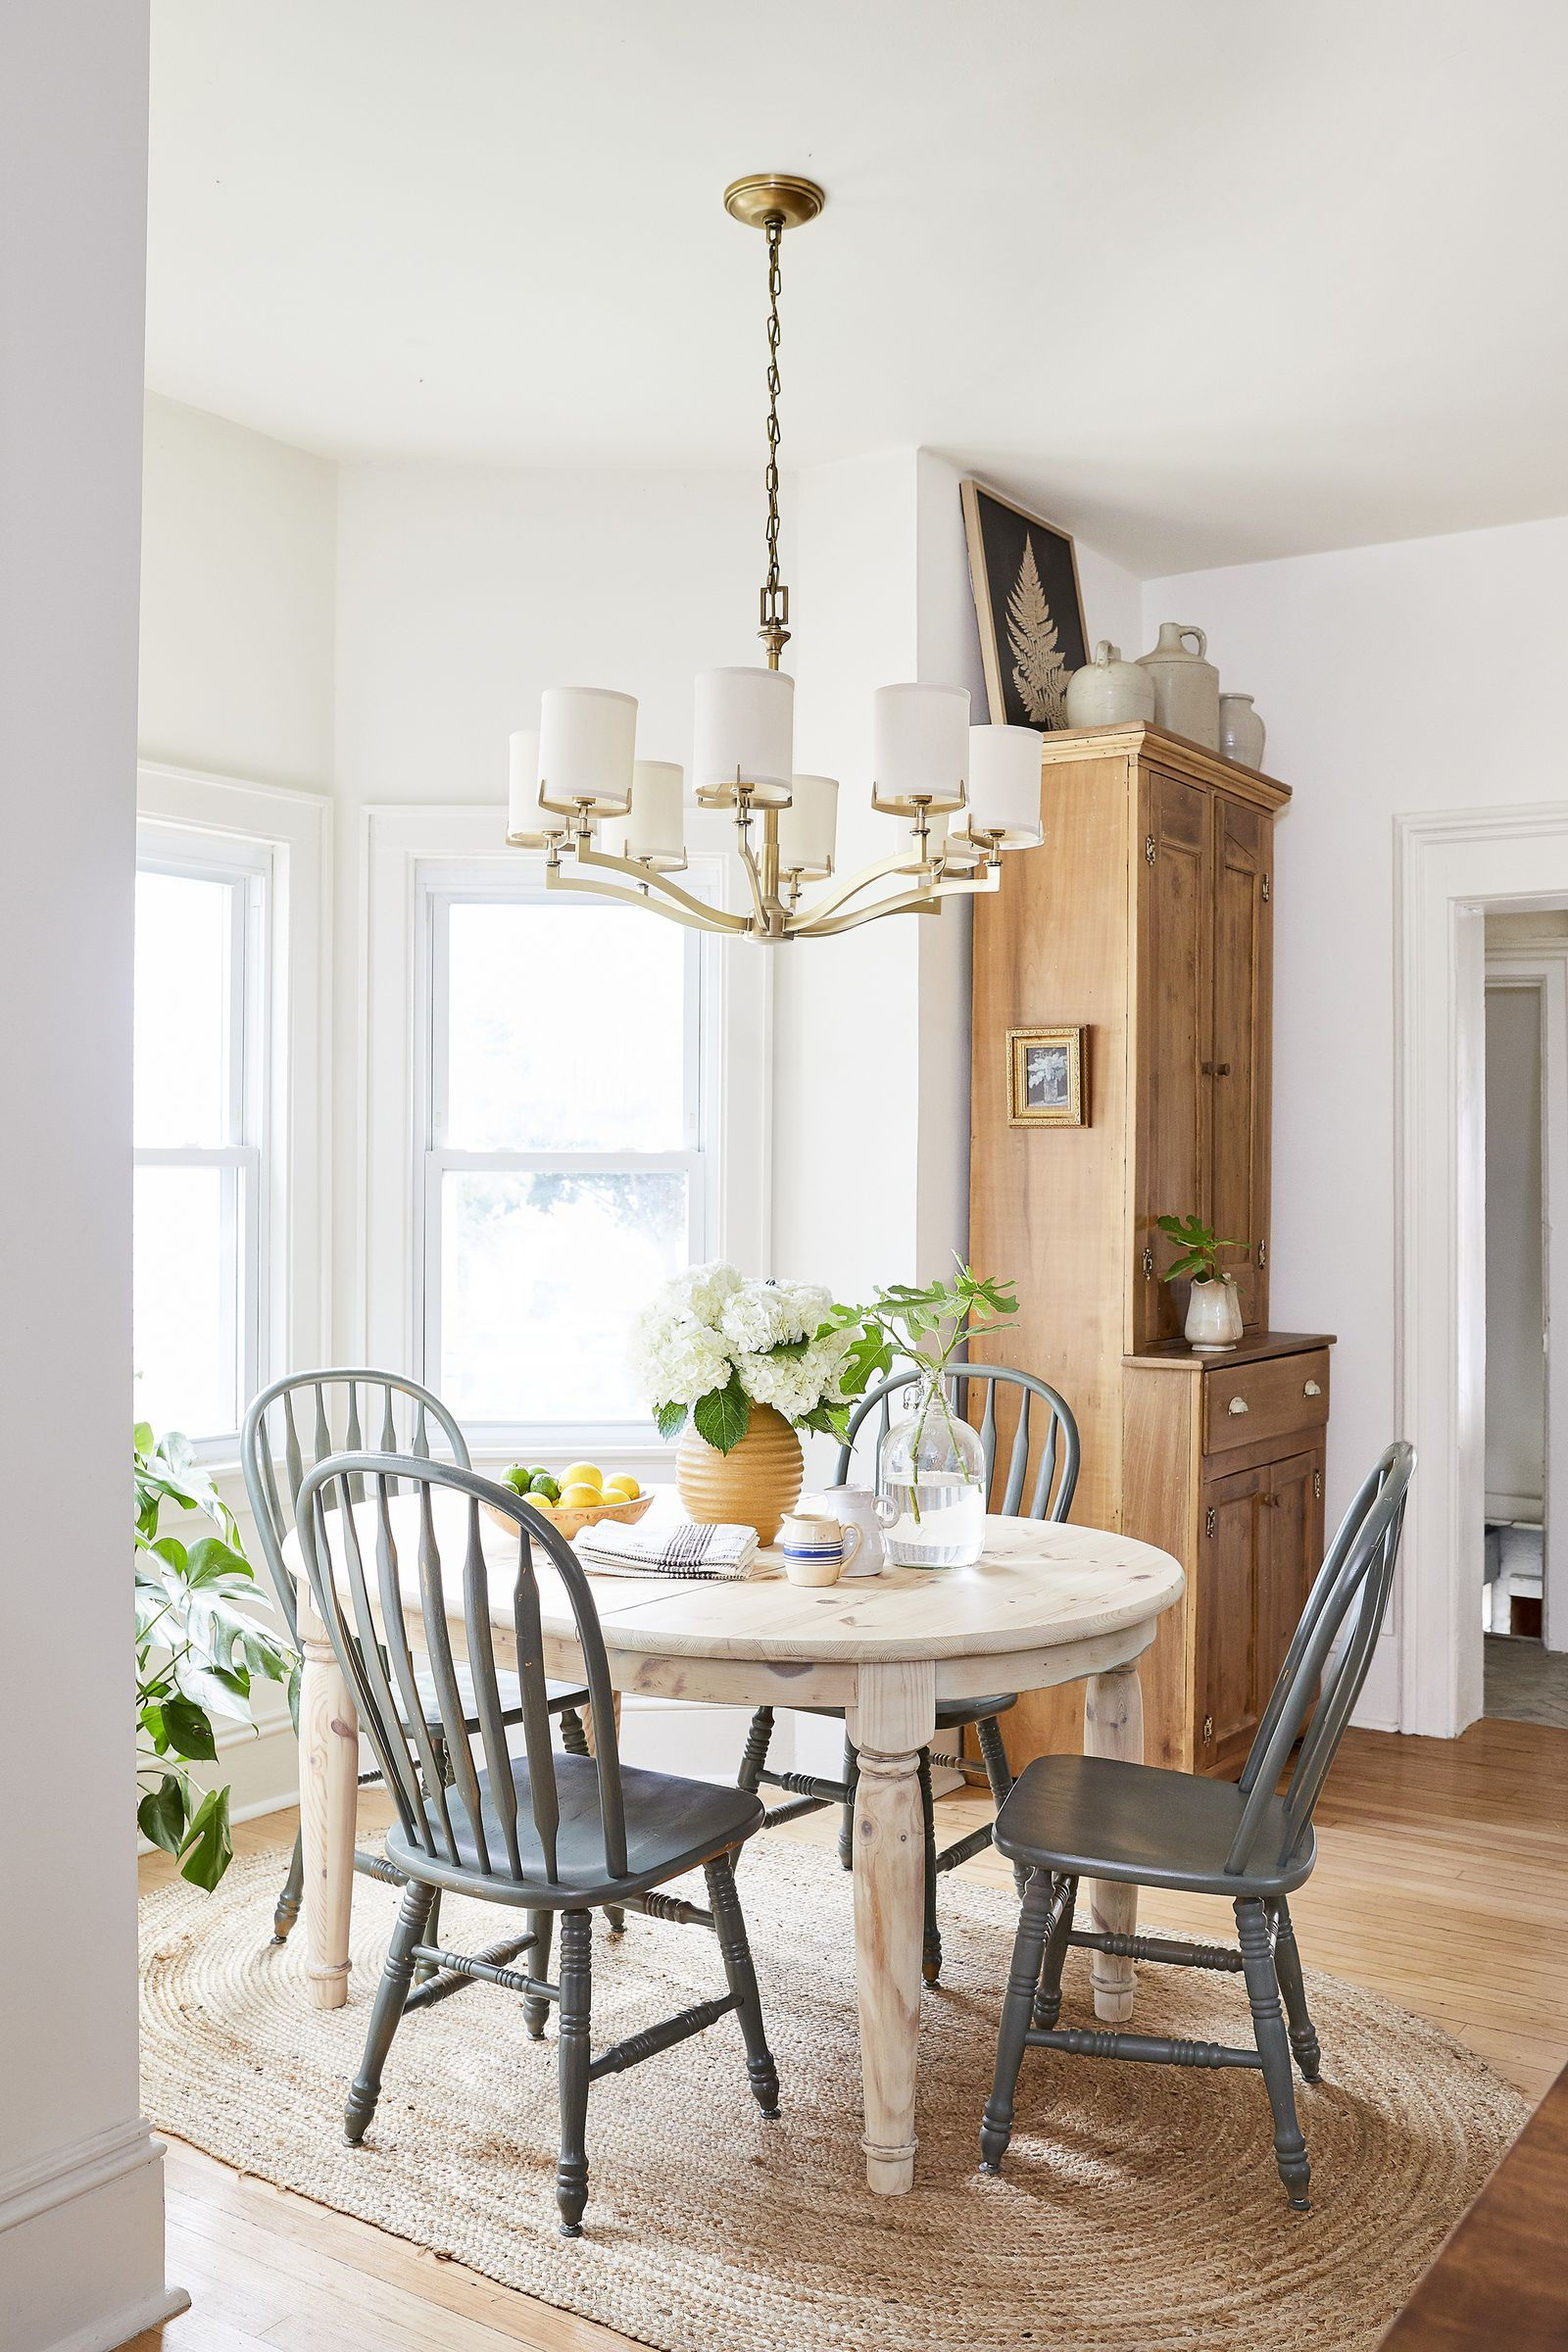 Decorate On A Budget With These Creative Style Tips And Tricks Farmhouse Dining Rooms Decor Casual Dining Rooms Farmhouse Dining Room